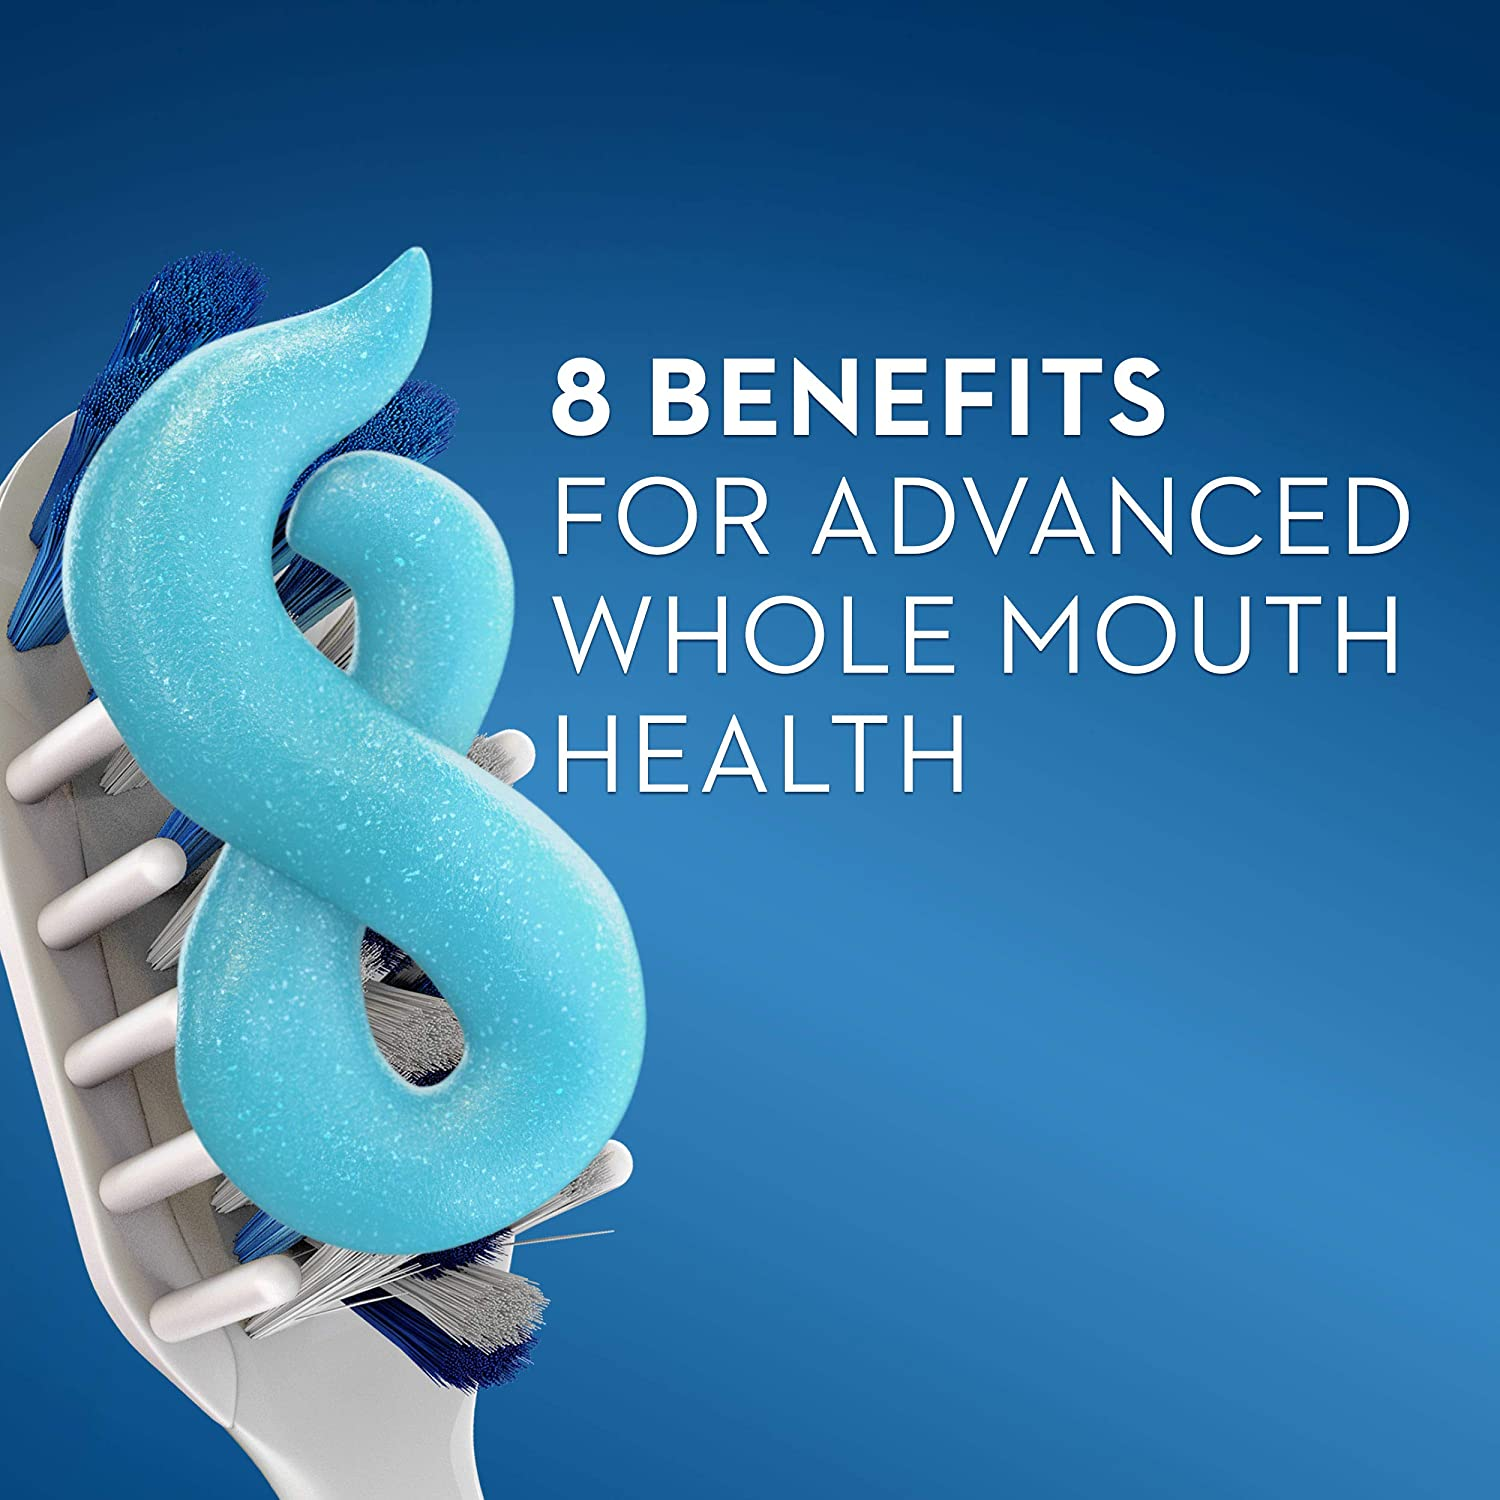 Crest Pro-Health Smooth Formula Toothpaste, Clean Mint, 4.6 oz, 3 Count : Beauty